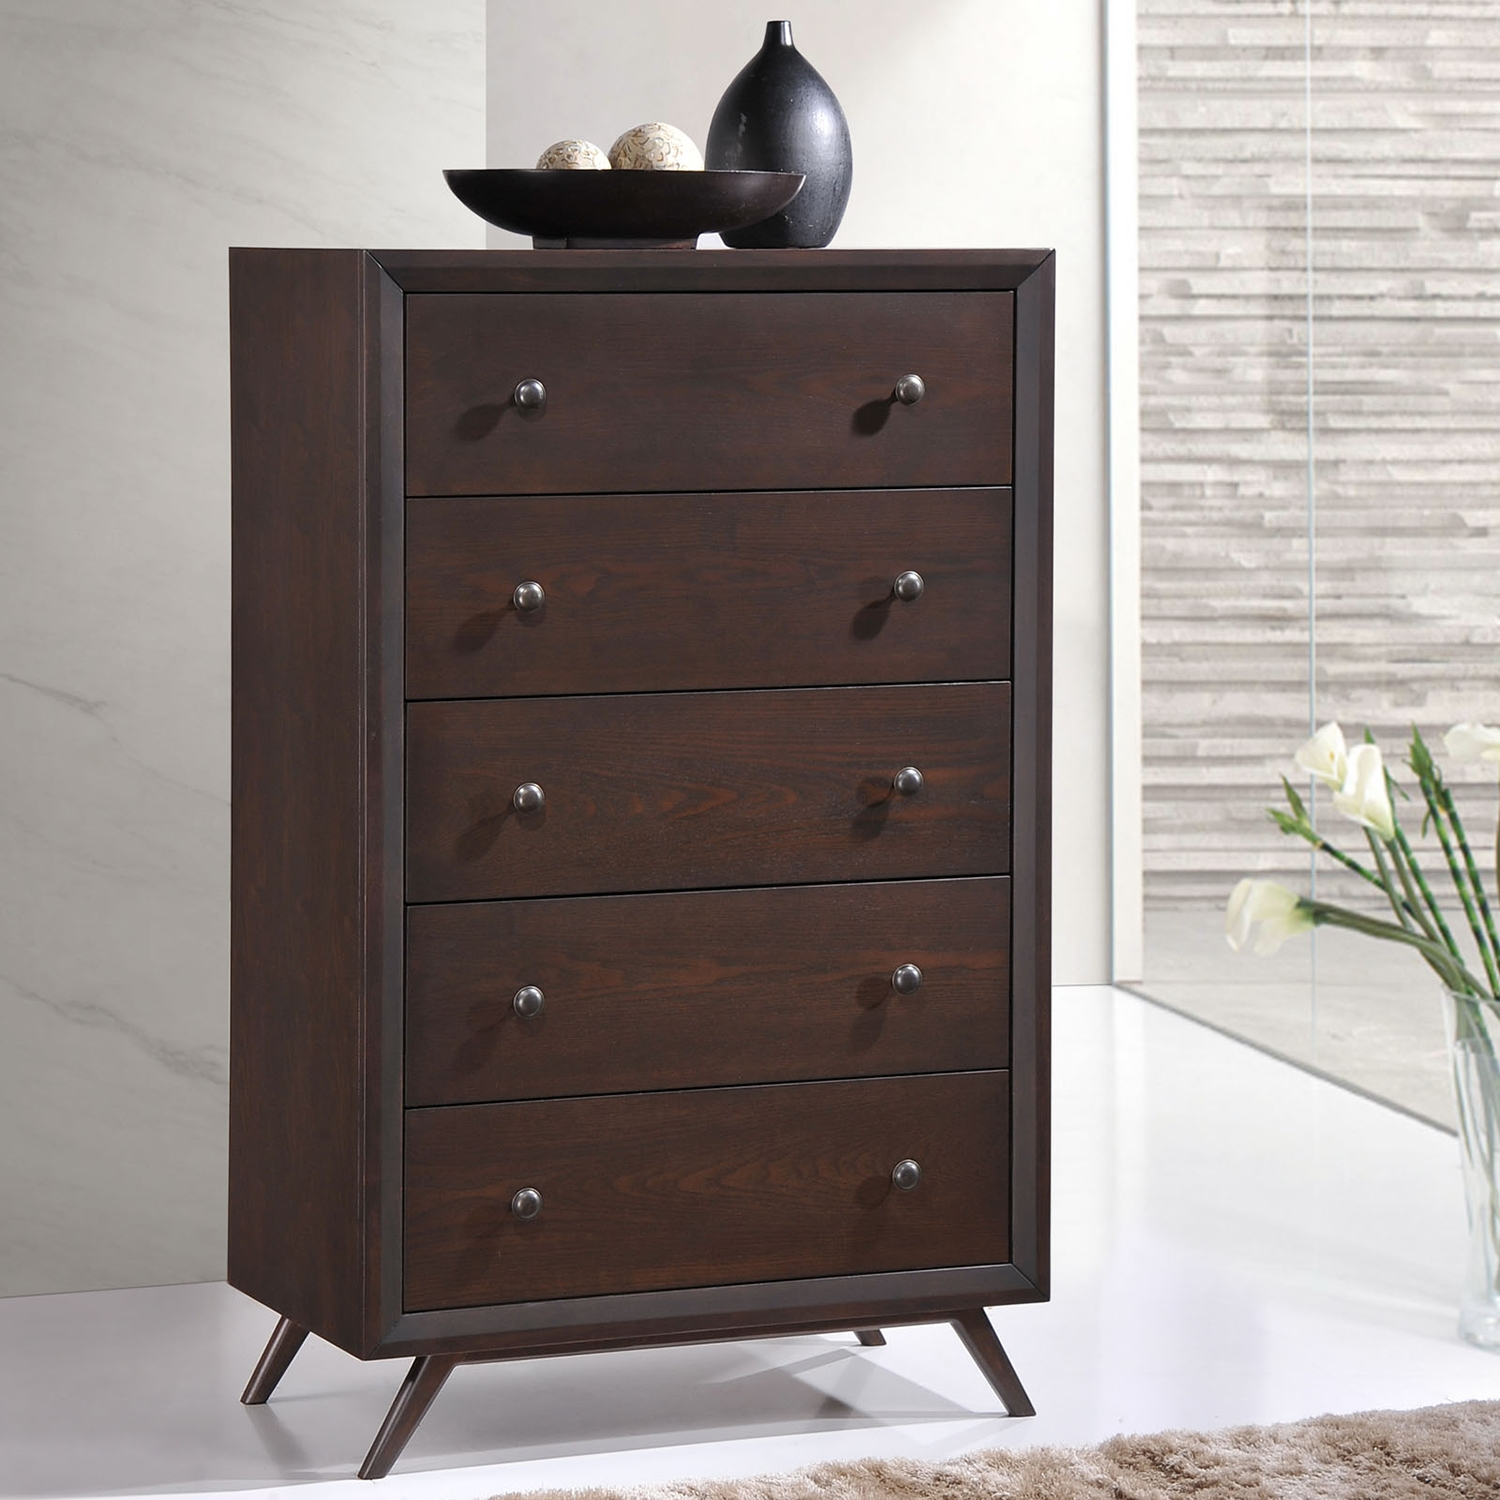 Tracy 5-Drawer Chest - Cappuccino - EEI-MOD-5242-CAP